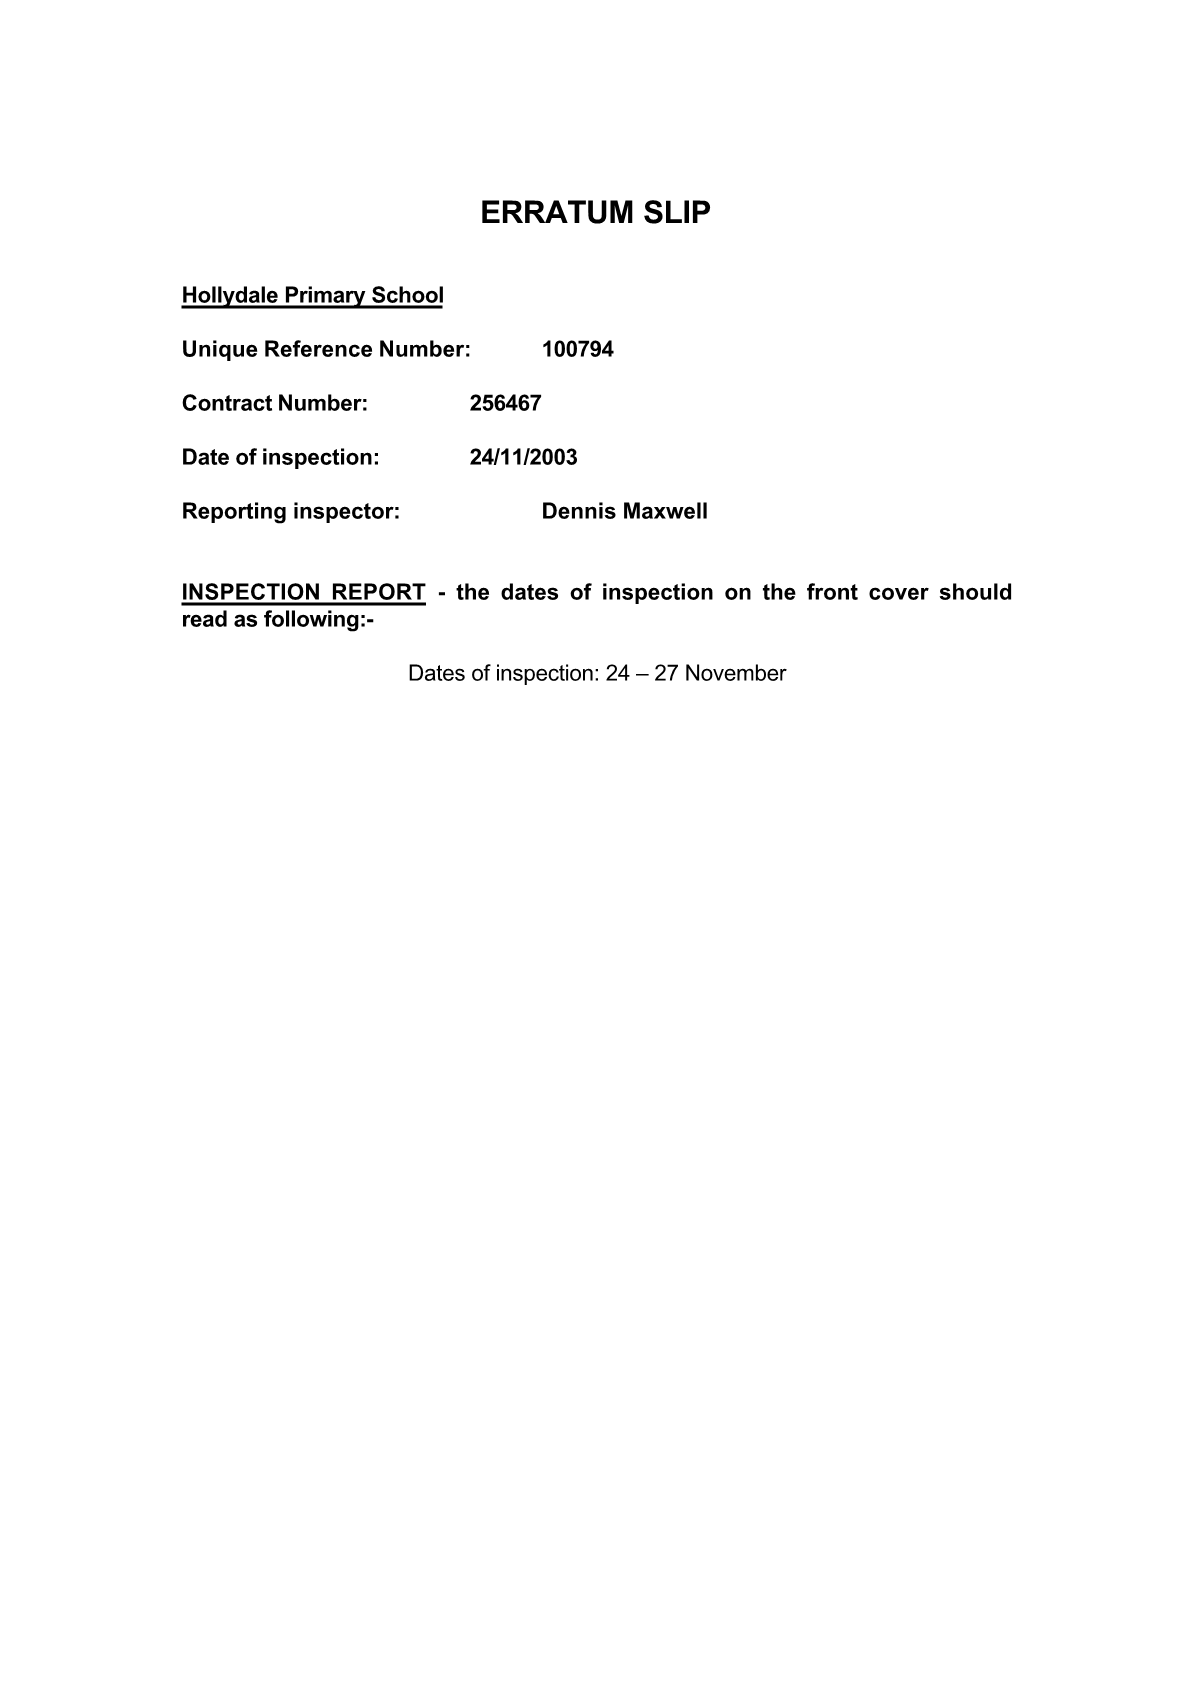 Inspection Report 2003